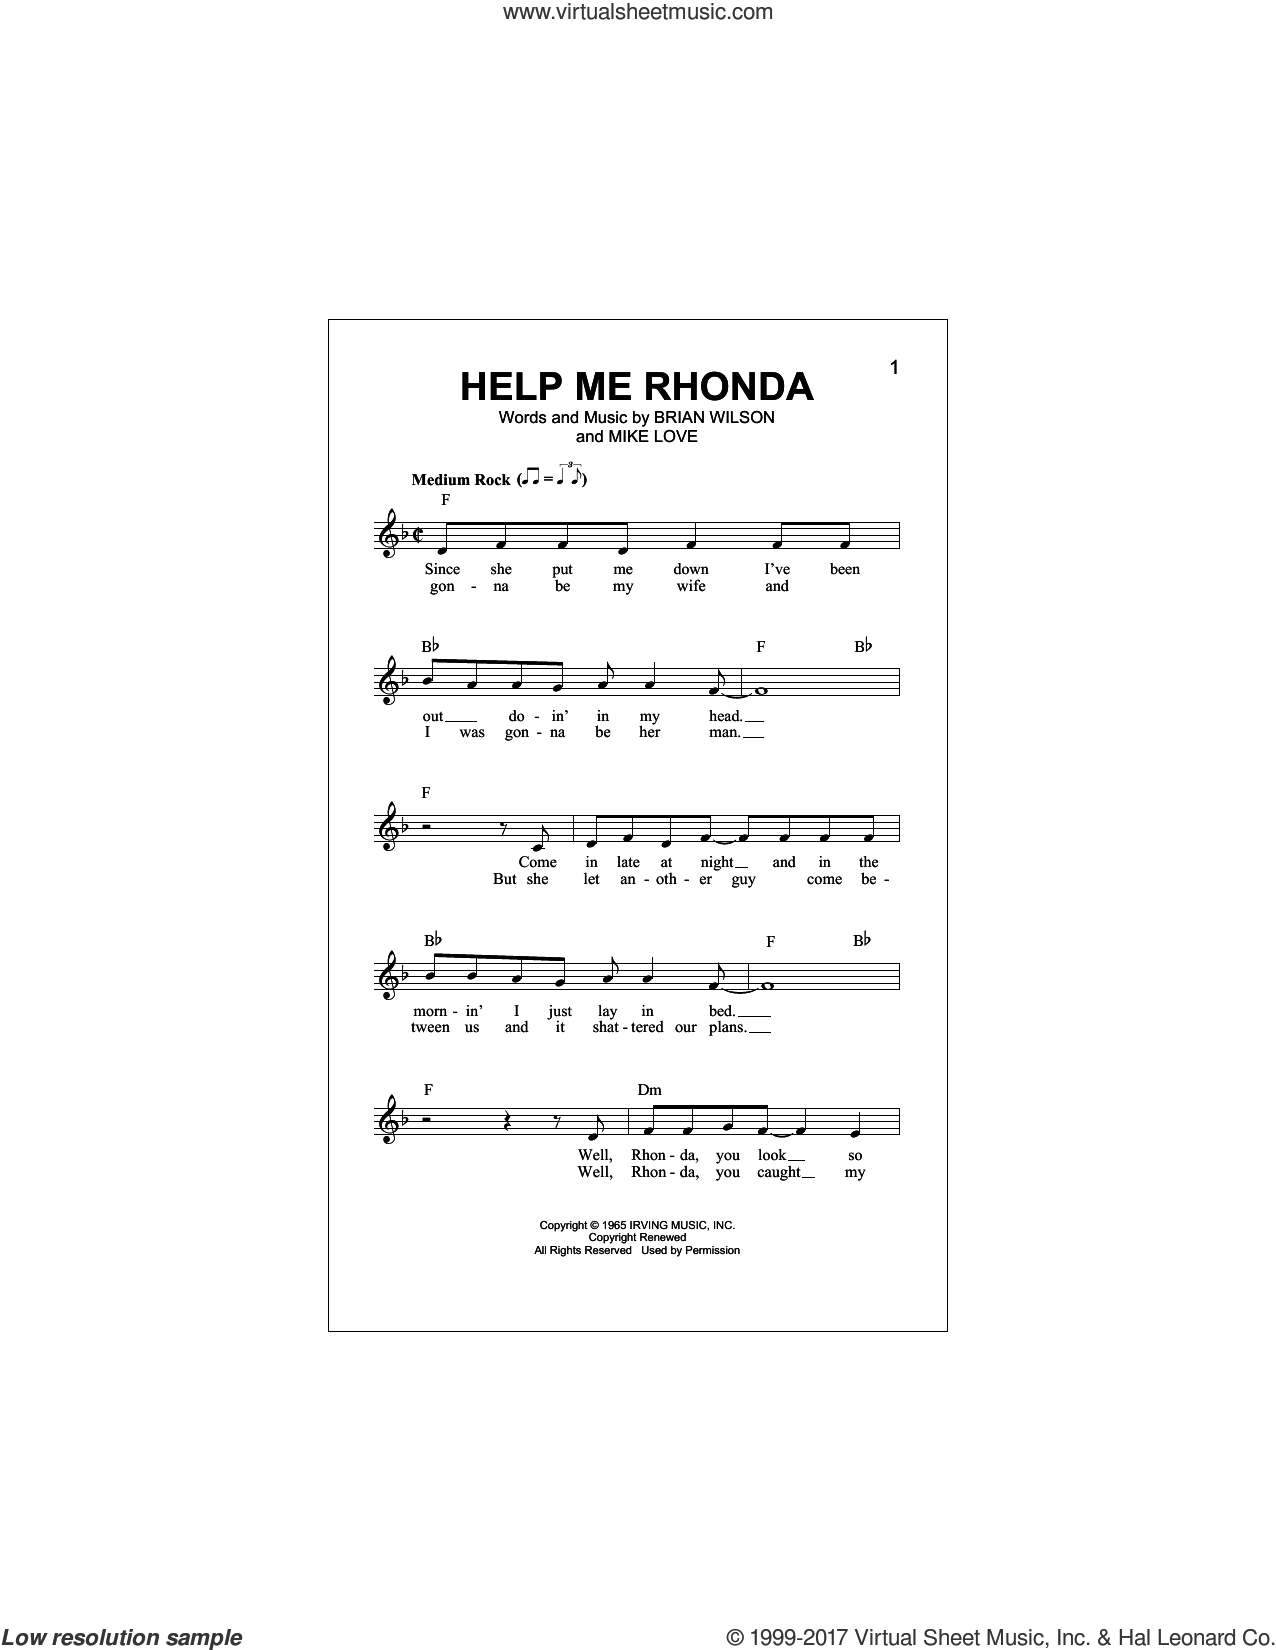 Help Me Rhonda sheet music for voice and other instruments (fake book) by The Beach Boys, Brian Wilson and Mike Love, intermediate skill level